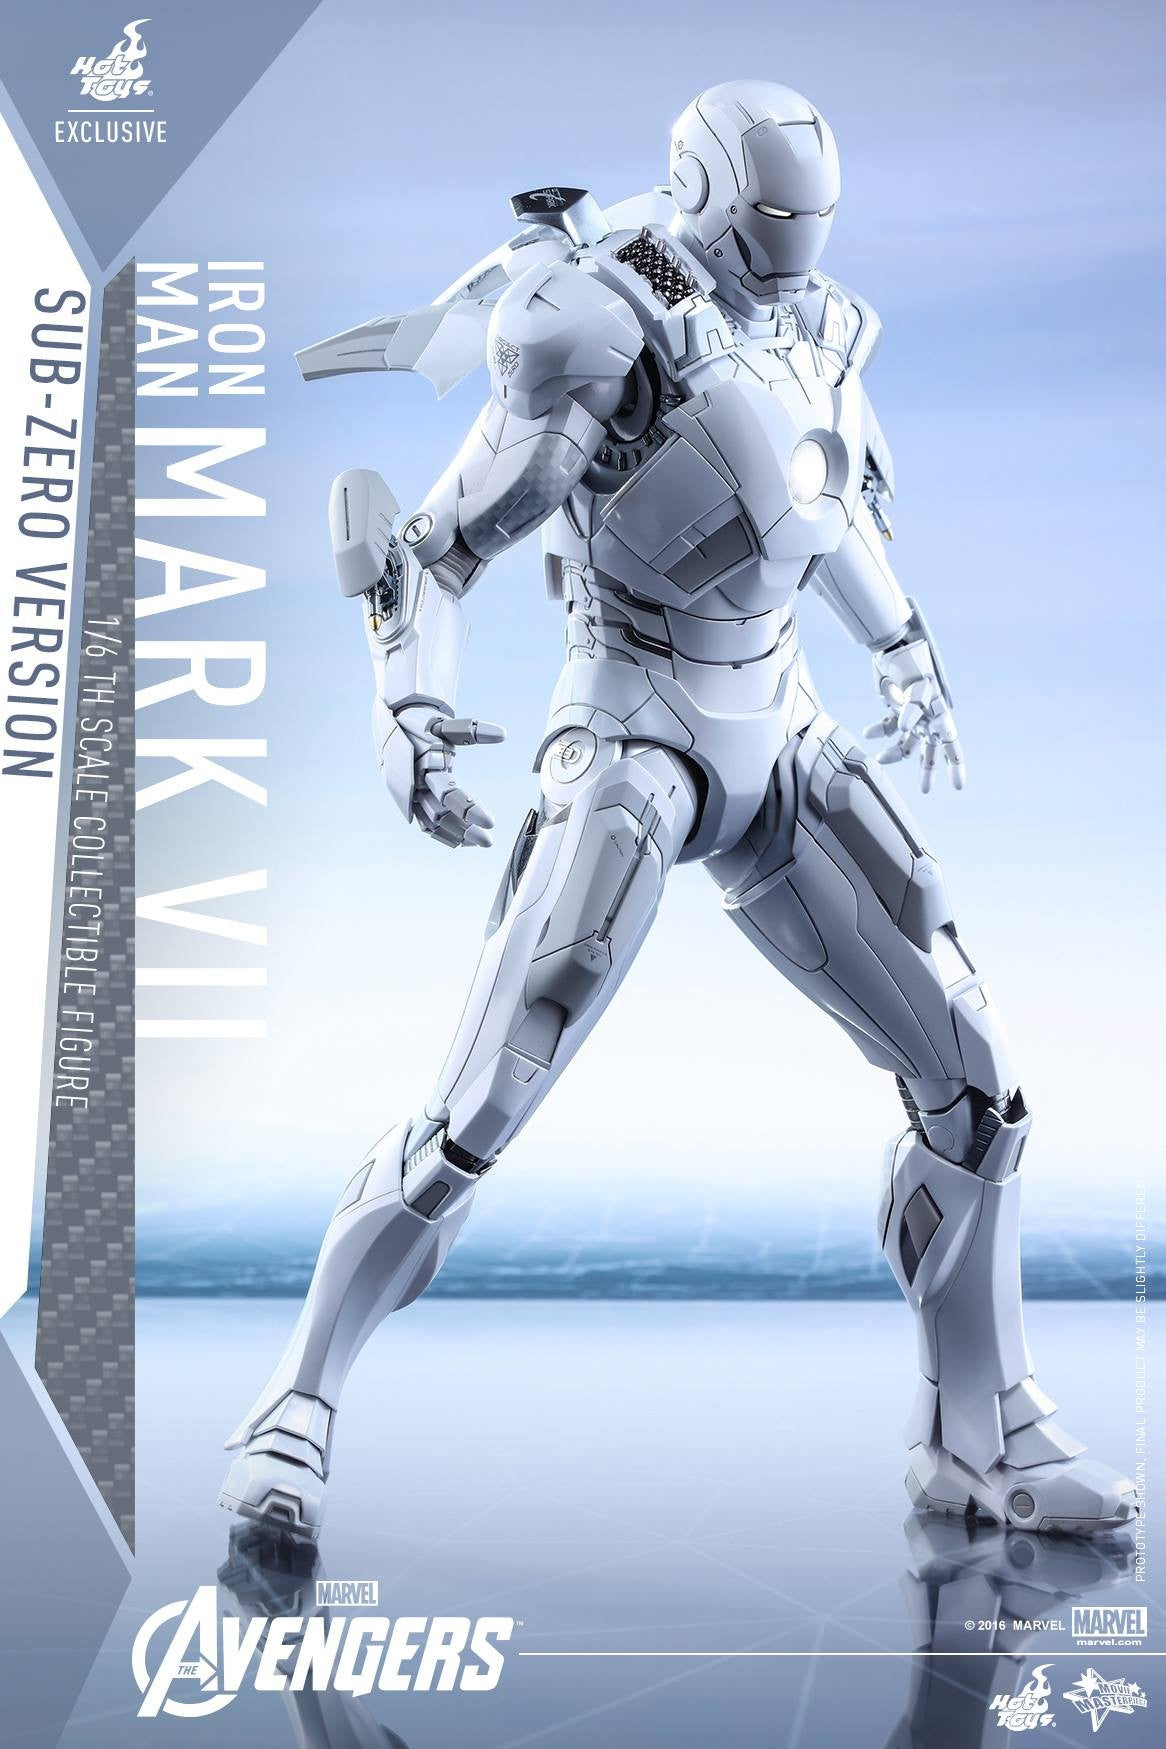 (IN STOCK) Hot Toys - MMS329 - The Avengers - Iron Man Mark VII (Sub-Zero Version) - Marvelous Toys - 3